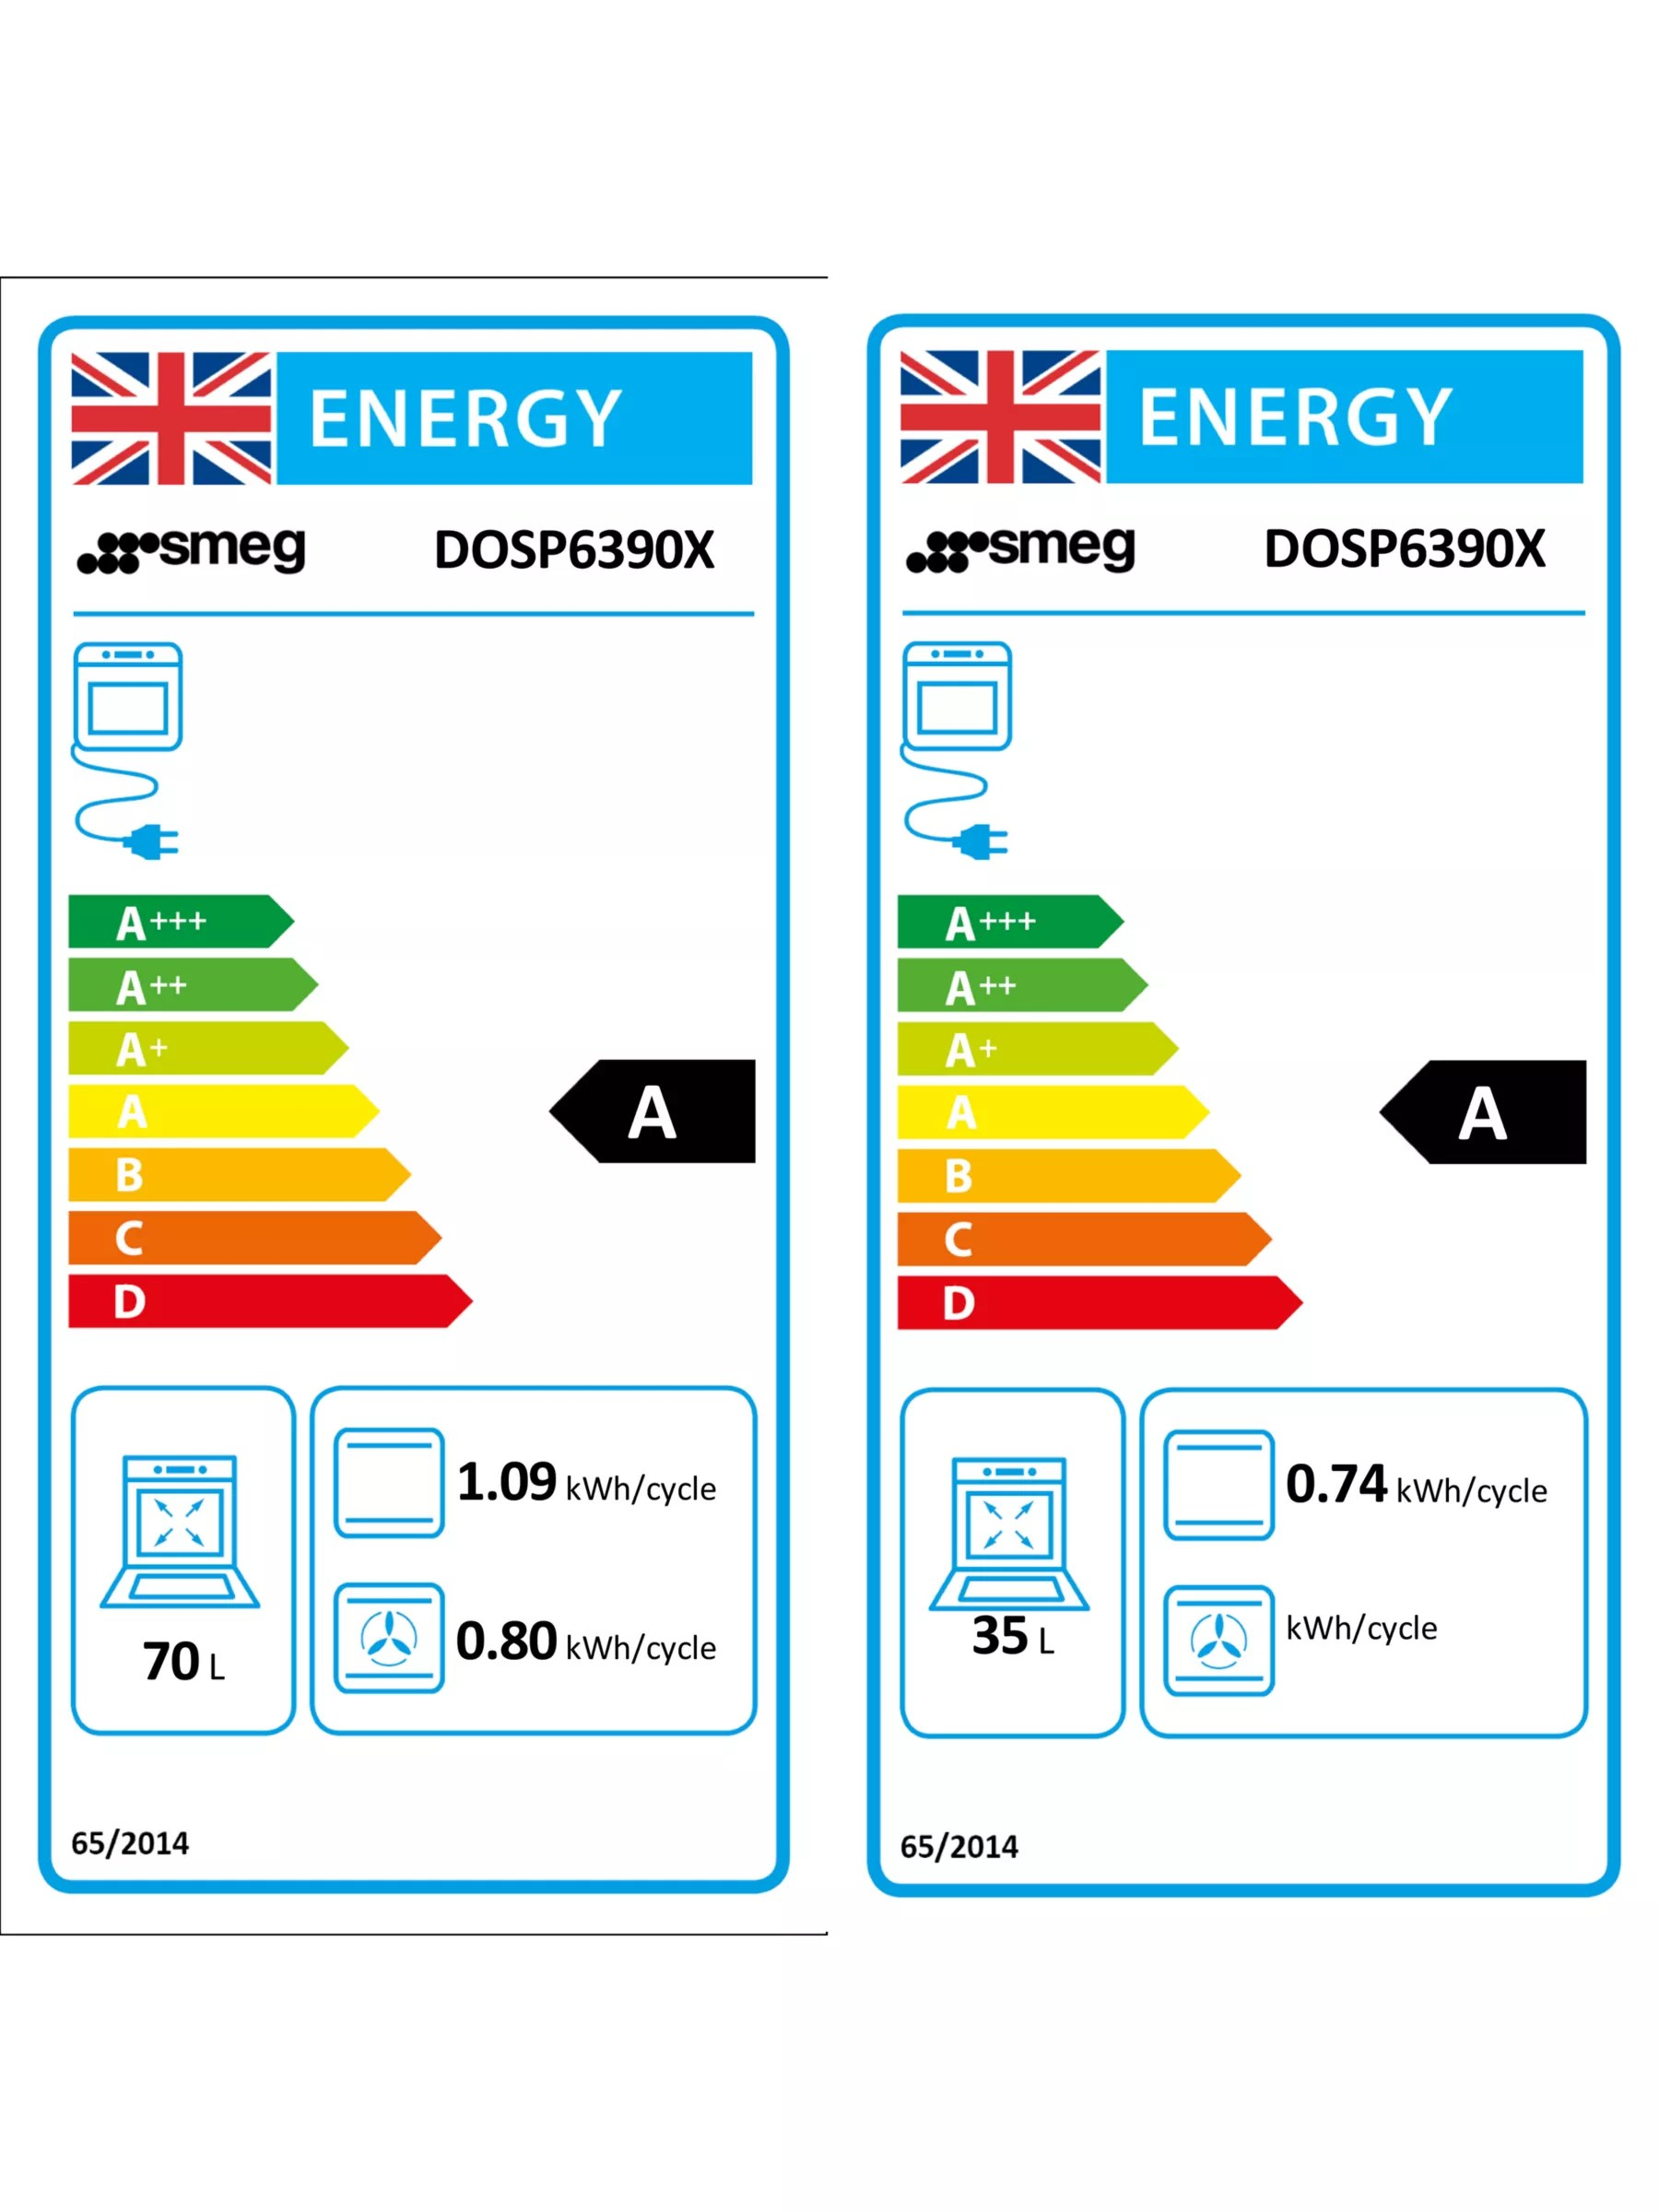 smeg double oven wiring diagram forest river sandpiper 373rebh dosp6390x classic built in multifunction